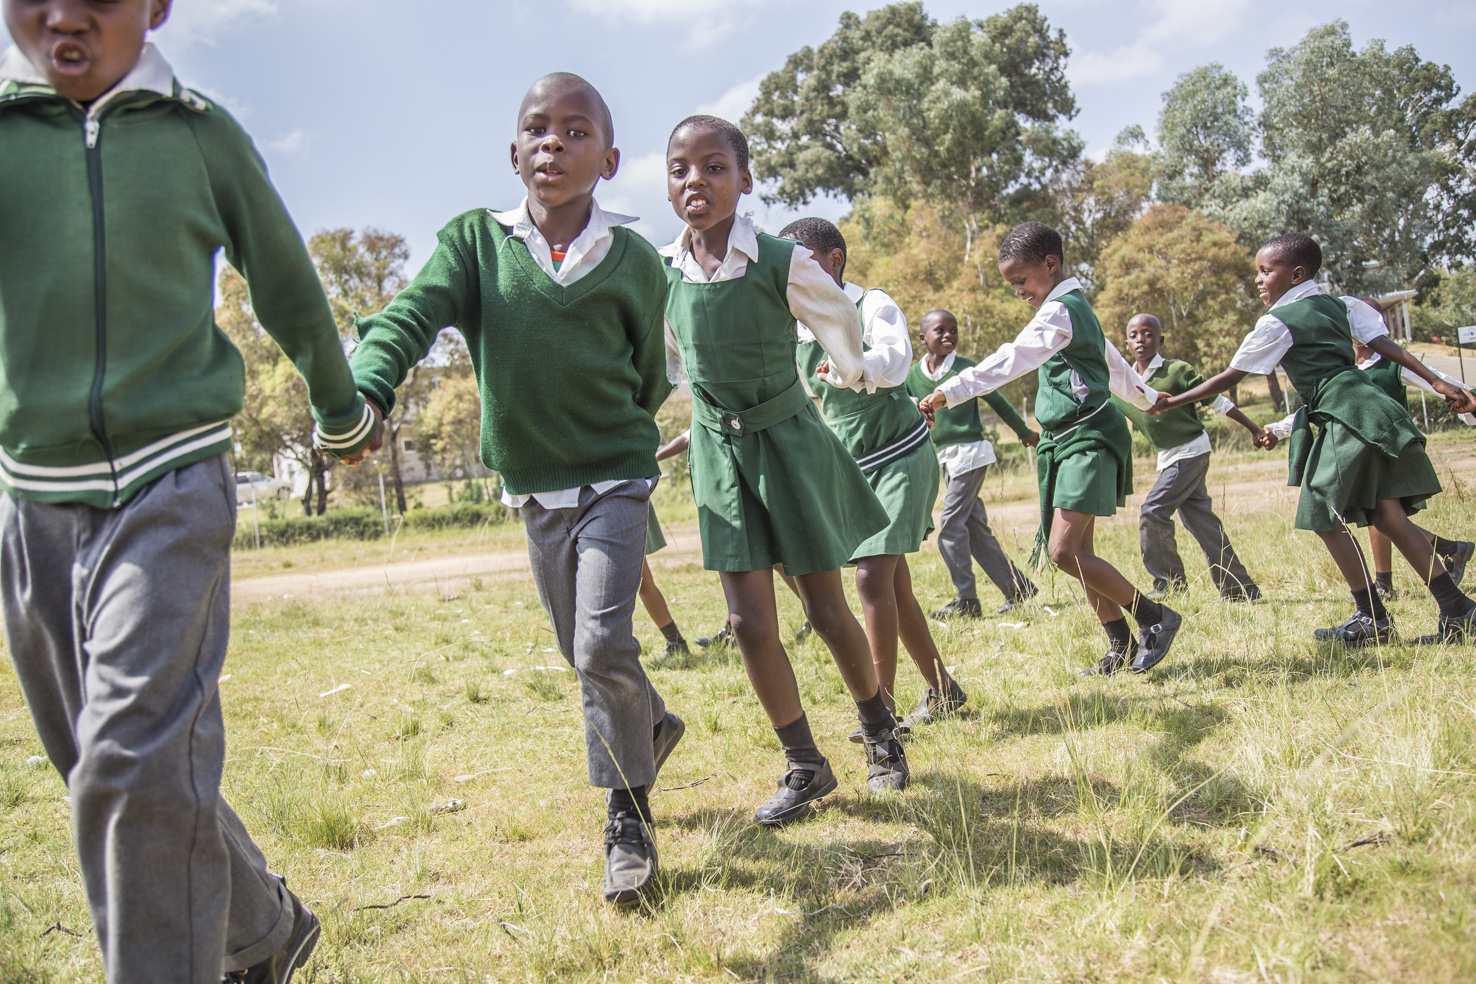 take a trip to lesotho to see the children